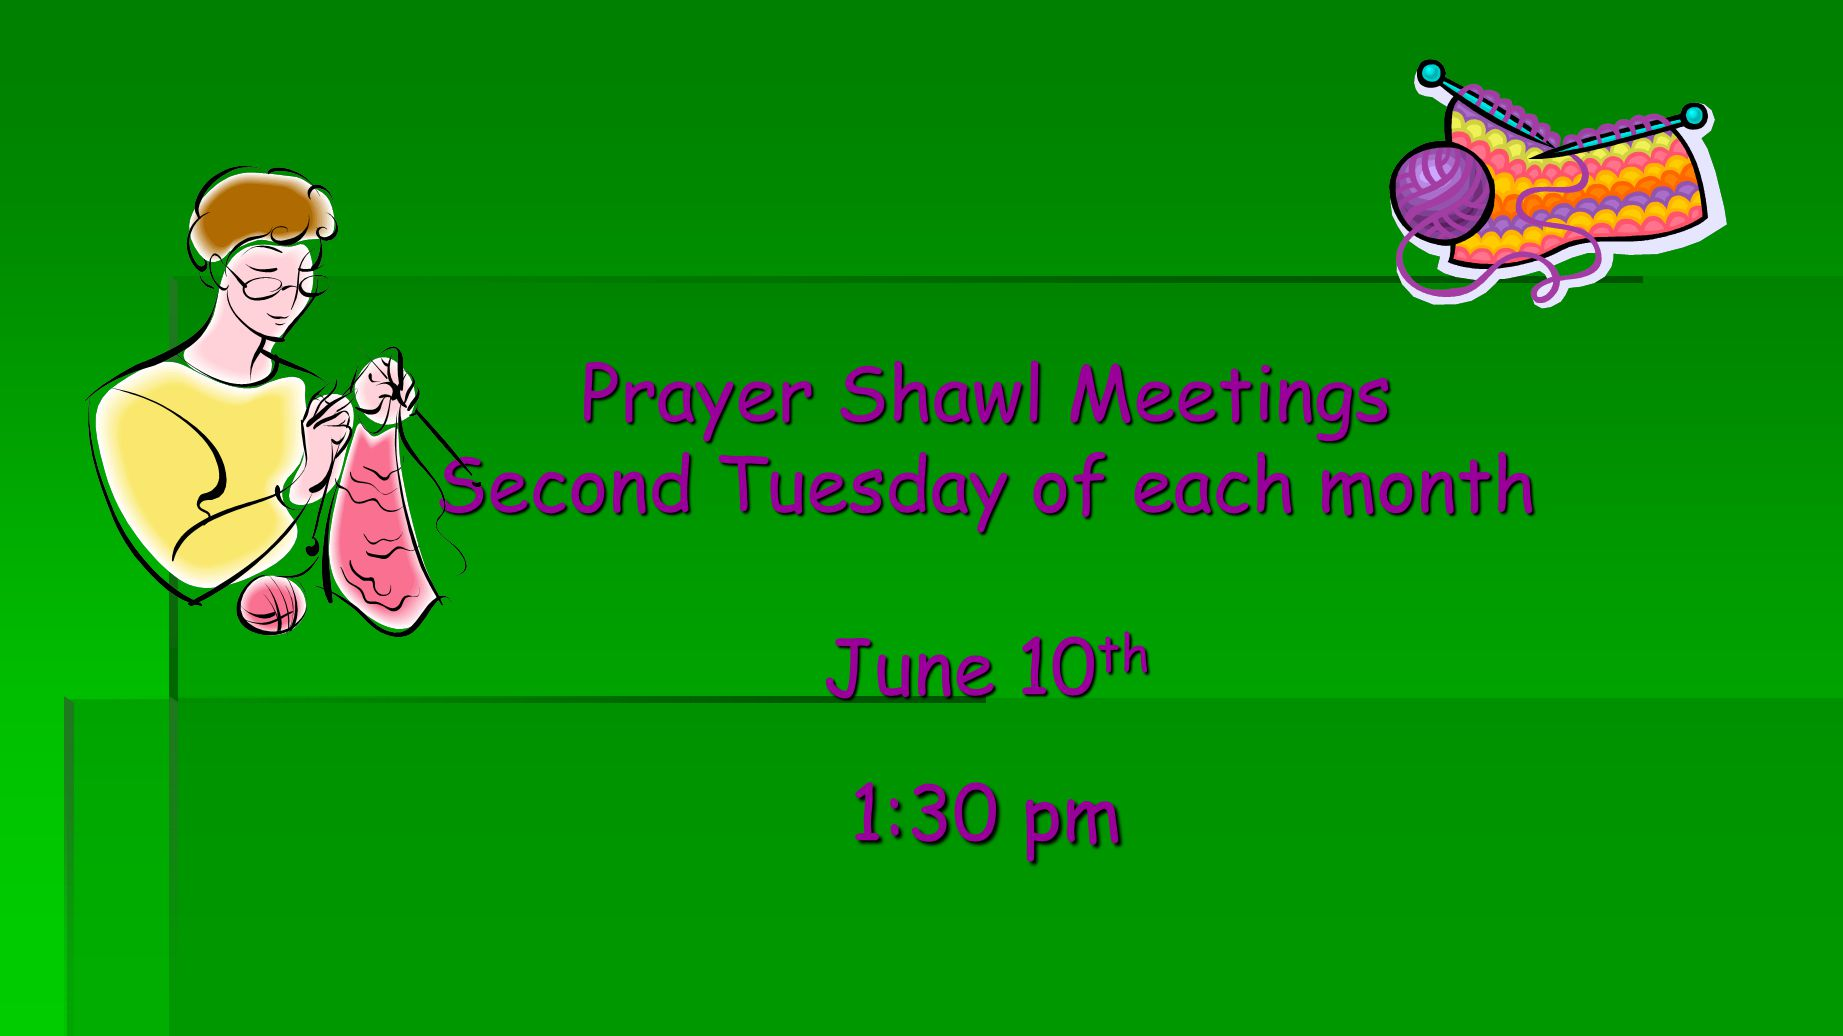 Prayer Shawl Meetings Second Tuesday of each month June 10 th 1:30 pm